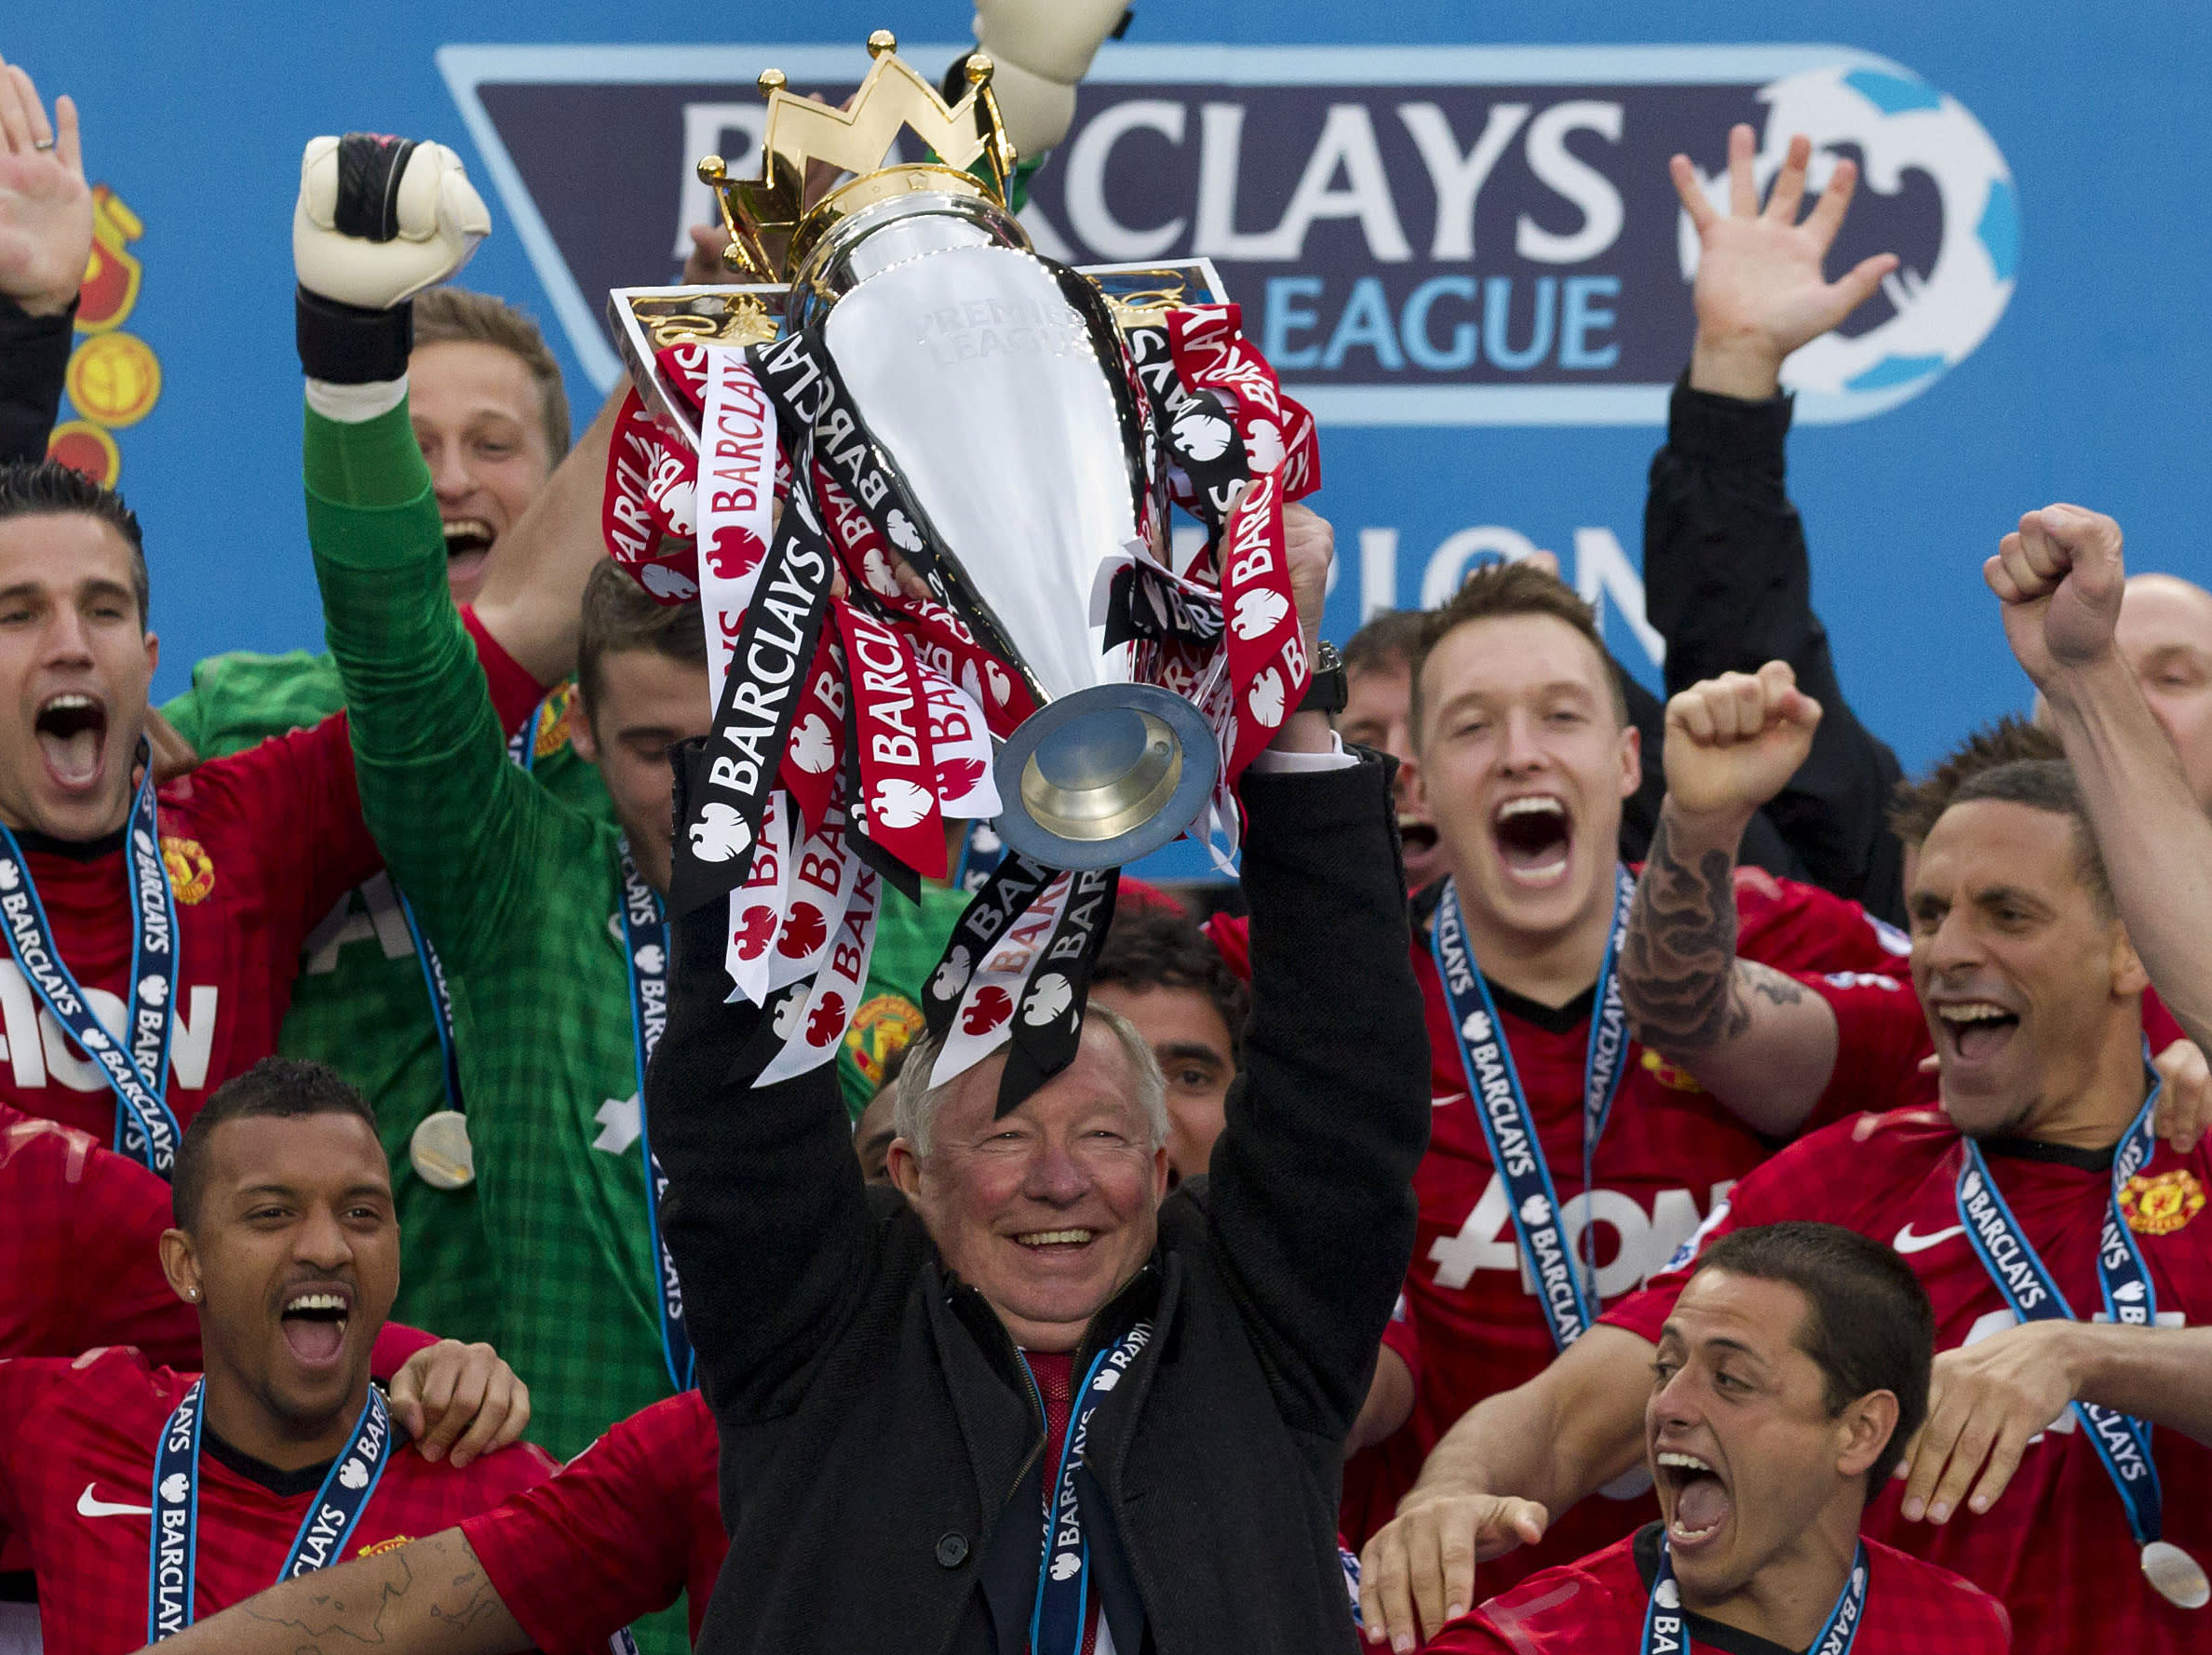 Manchester United's manager Sir Alex Ferguson, center, lifts the premier league trophy after his last home game in charge of the club, their English Premier League soccer match against Swansea City, at Old Trafford Stadium, Manchester, England, Sunday May 12, 2013. (AP Photo/Jon Super)